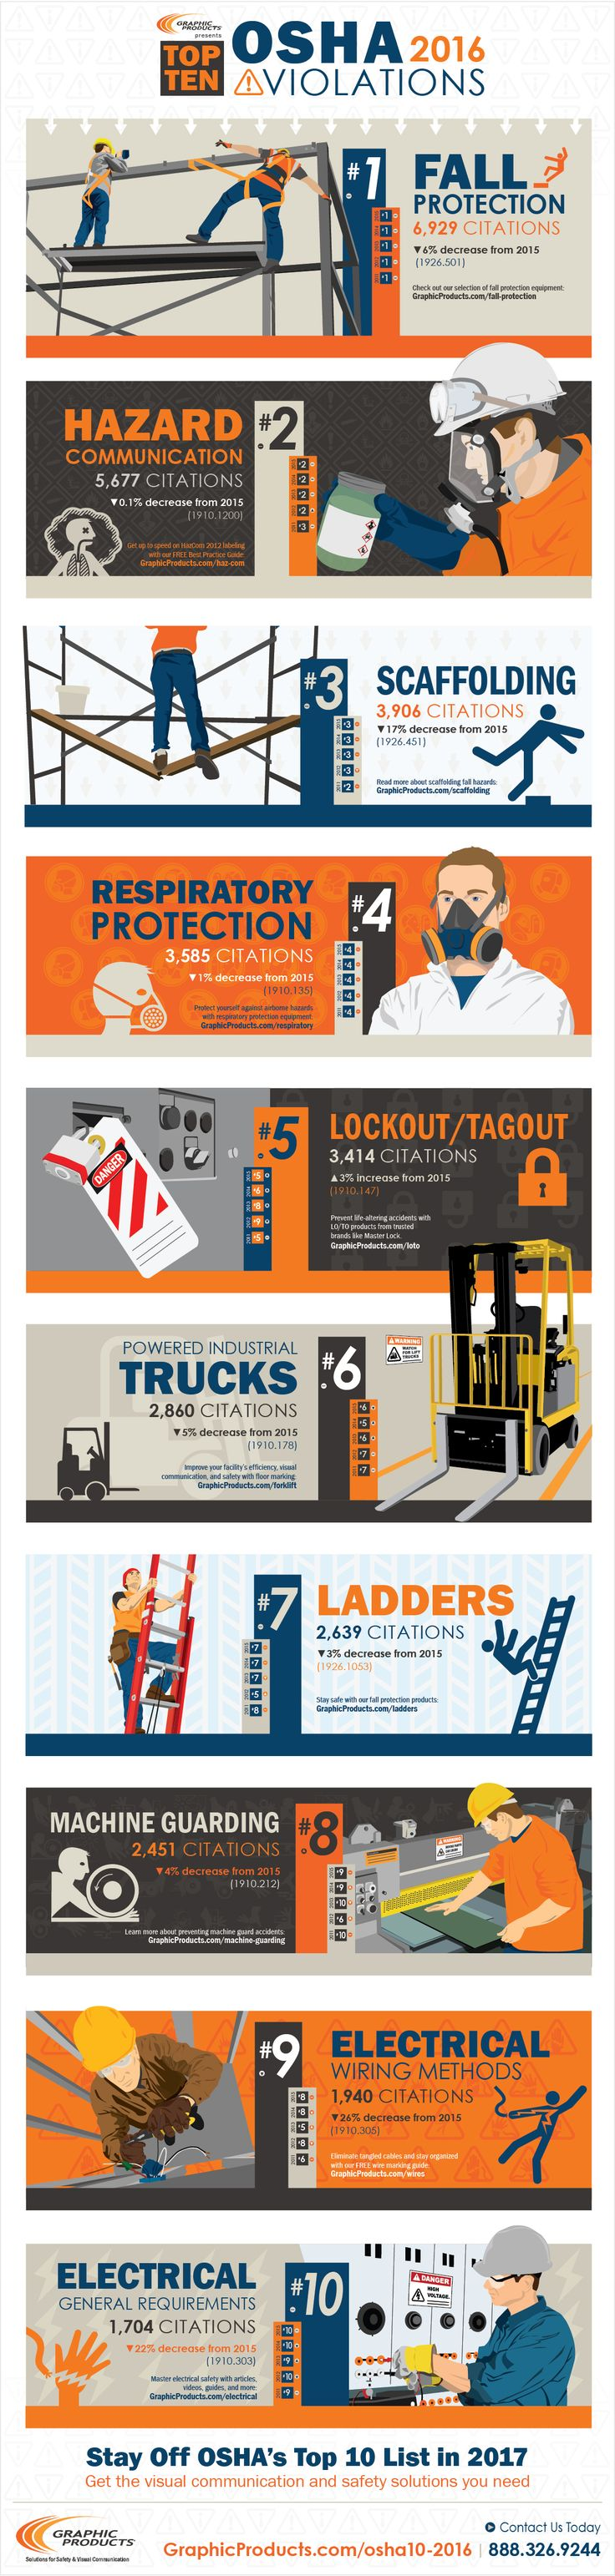 Infographic: The Top 10 OSHA Safety Violations Of 2016